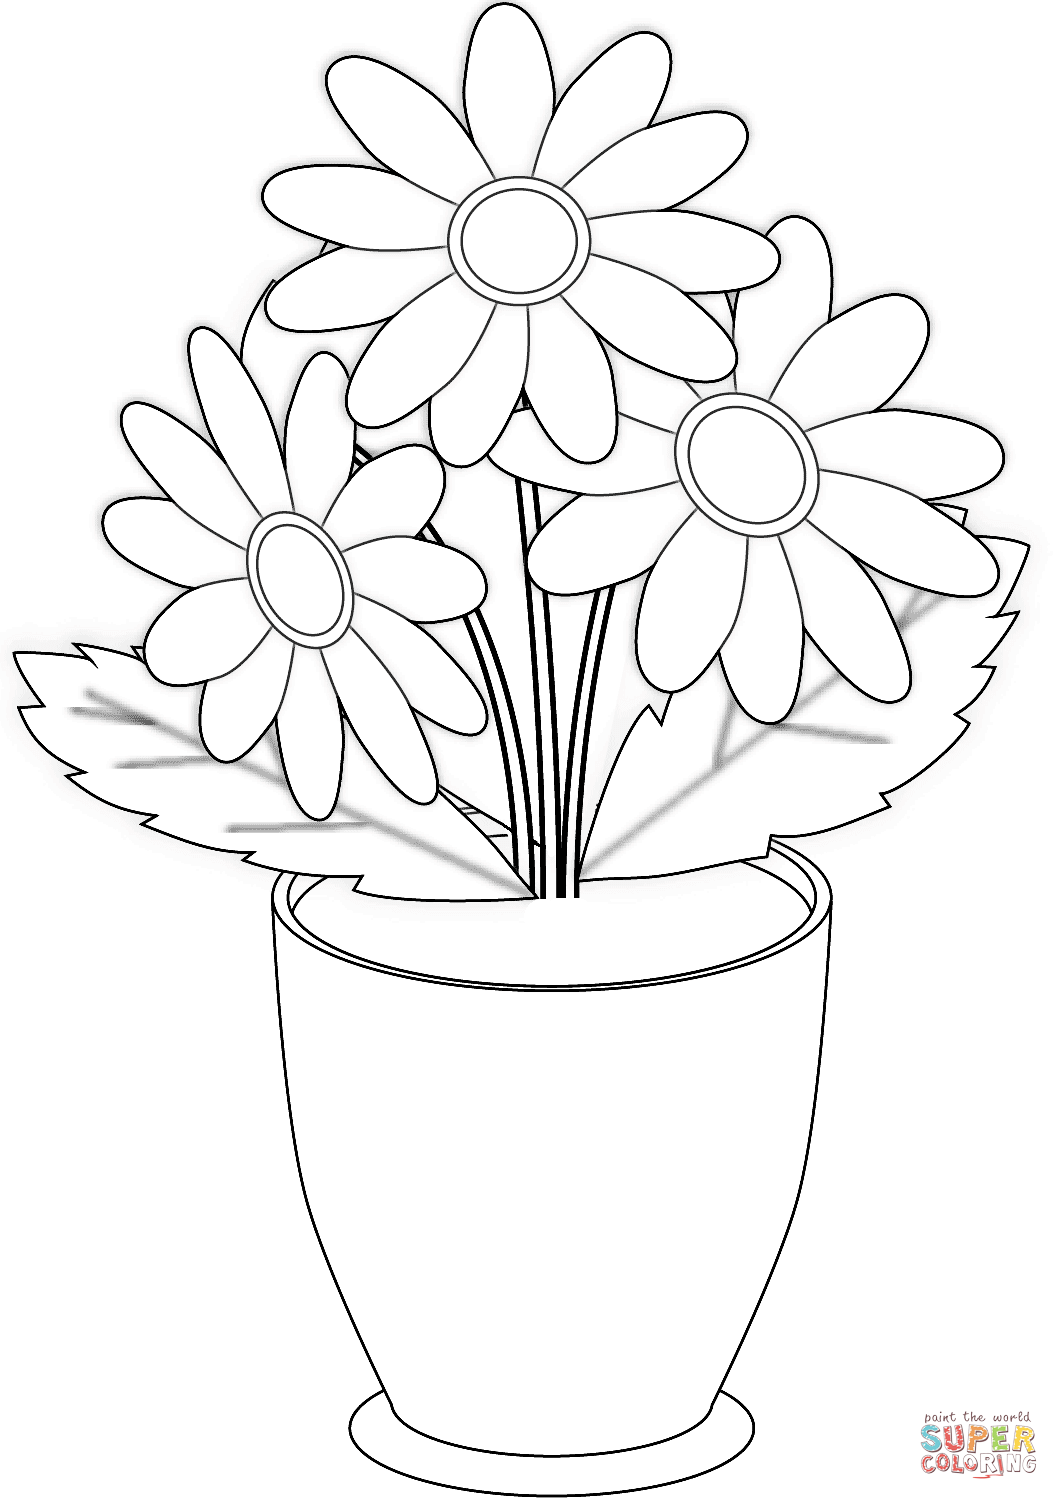 Chamomile Flowers In Pot Coloring Page Free Printable Coloring Pages Printable Flower Coloring Pages Flower Printable Flower Coloring Pages